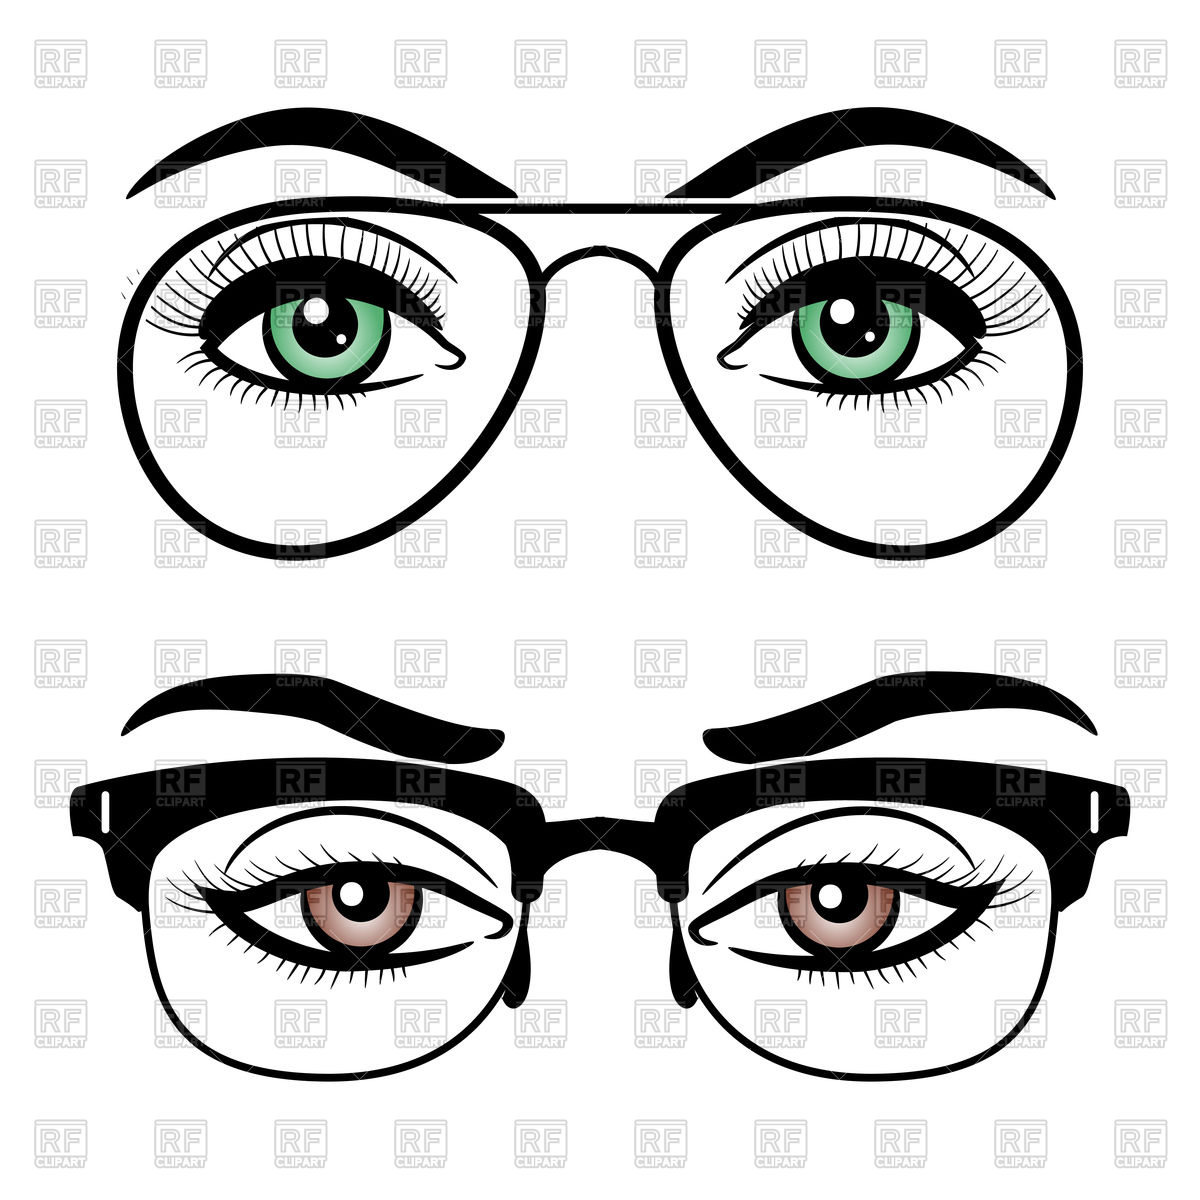 Female eyes with glasses isolated on white background Stock Vector Image.